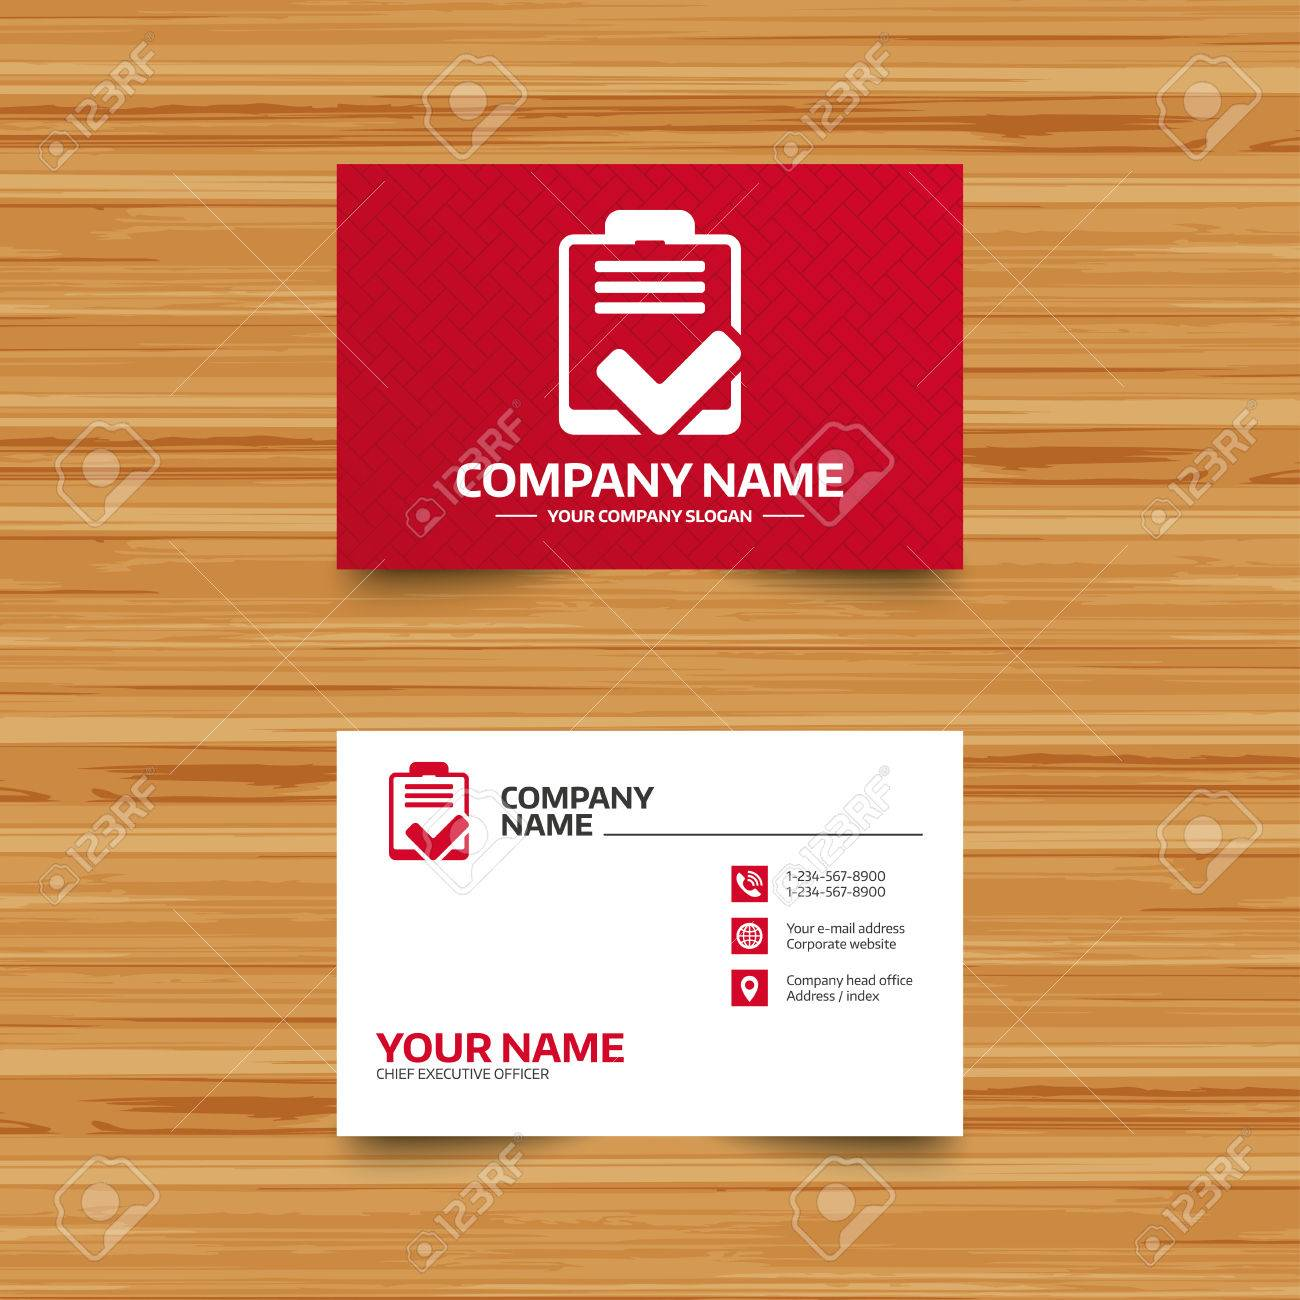 Business card template checklist sign icon control list symbol business card template checklist sign icon control list symbol survey poll or questionnaire reheart Choice Image